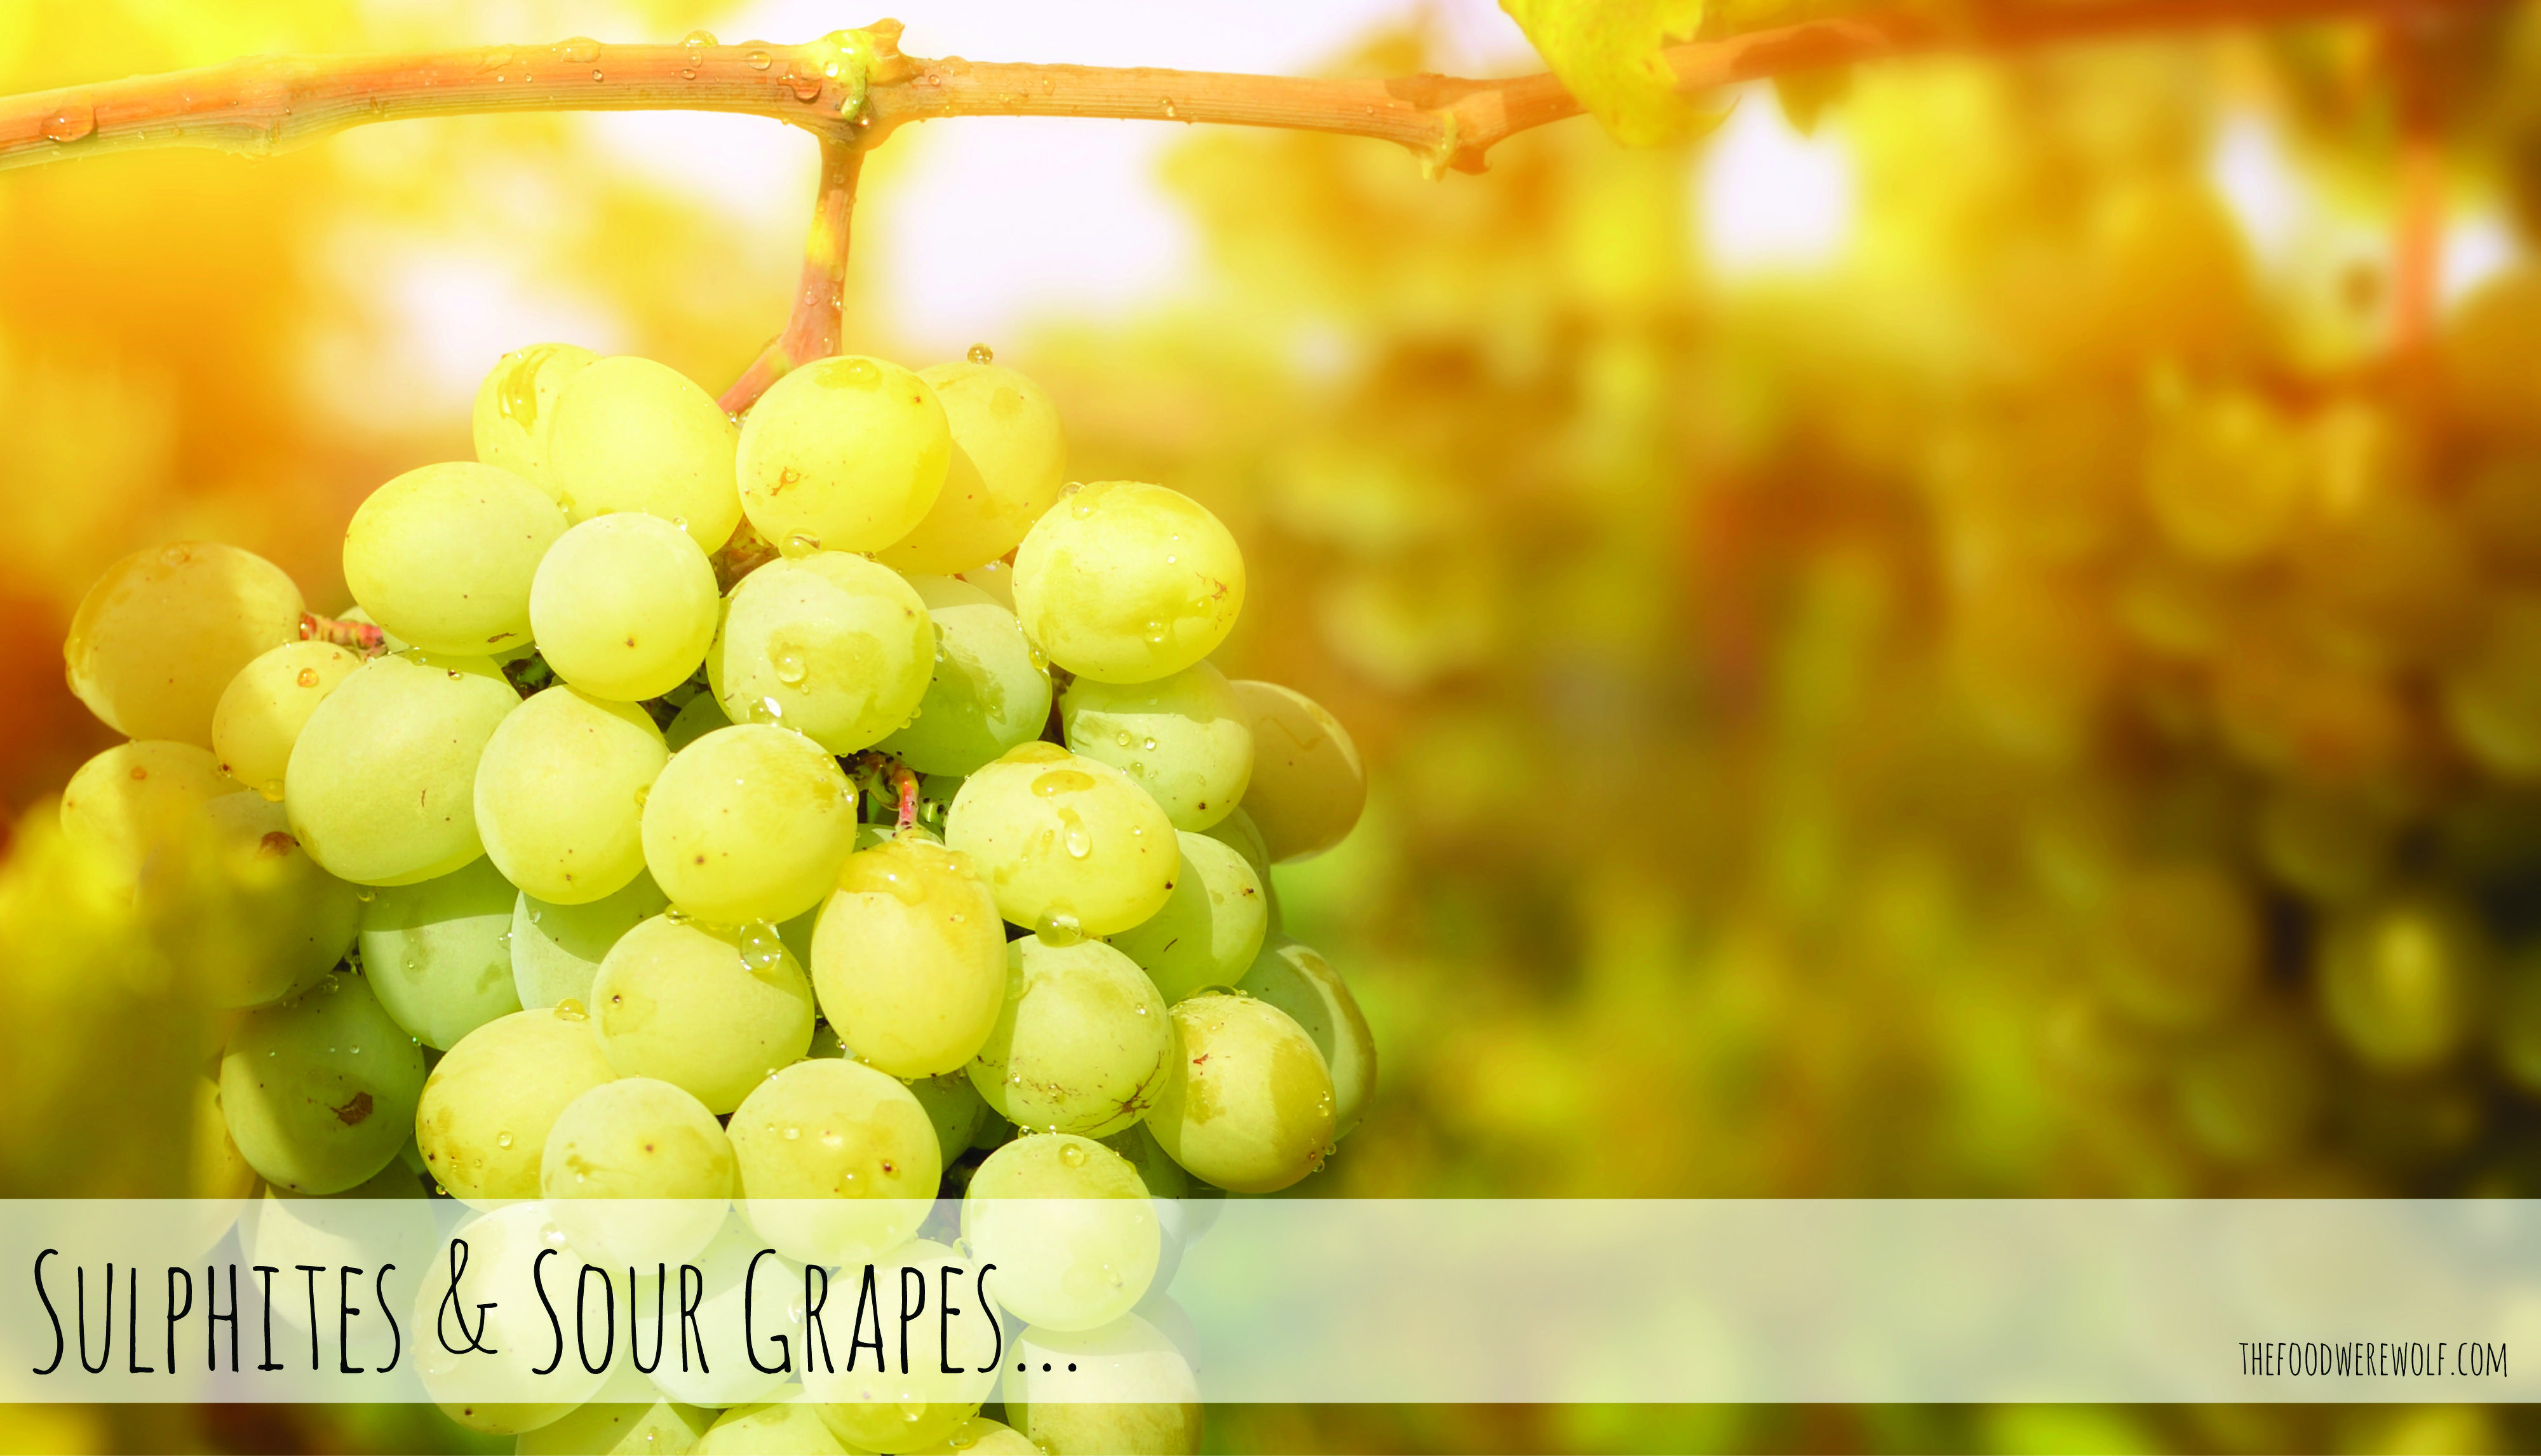 Sulphites Sour Grapes Blog Image